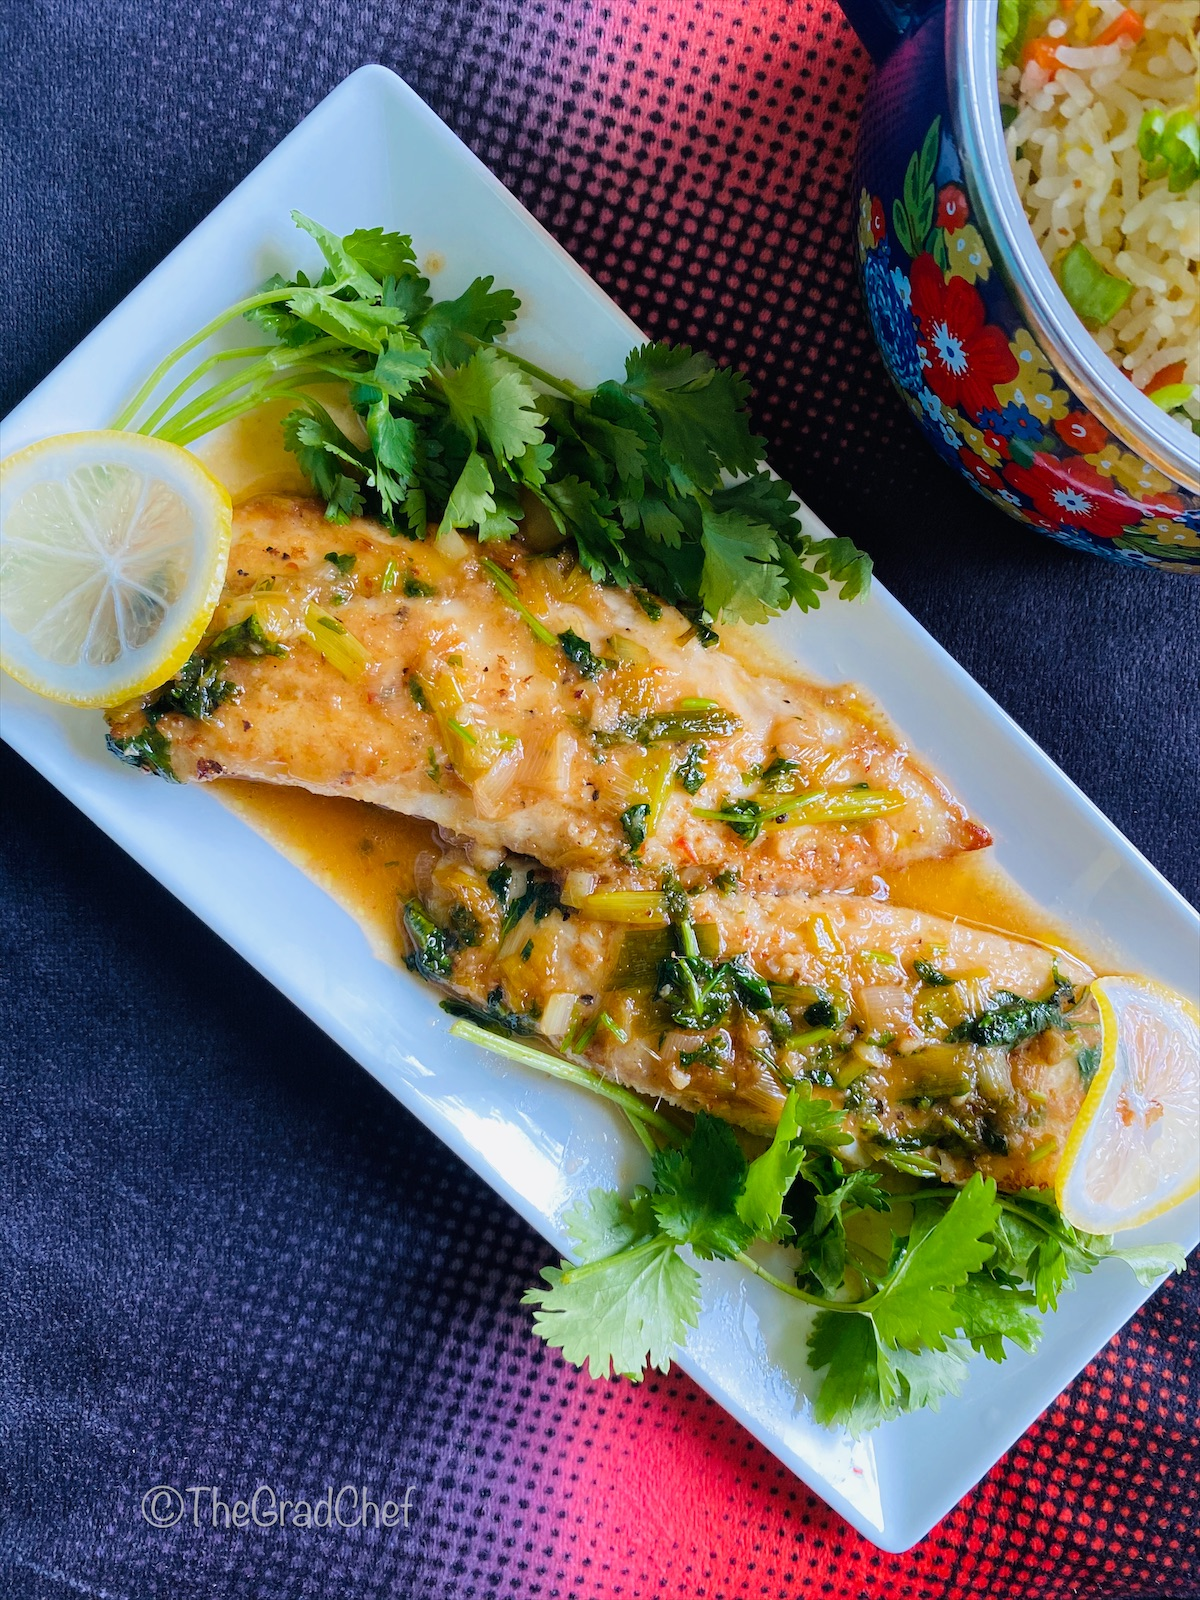 SWEET CHILI AND CILANTRO FISH